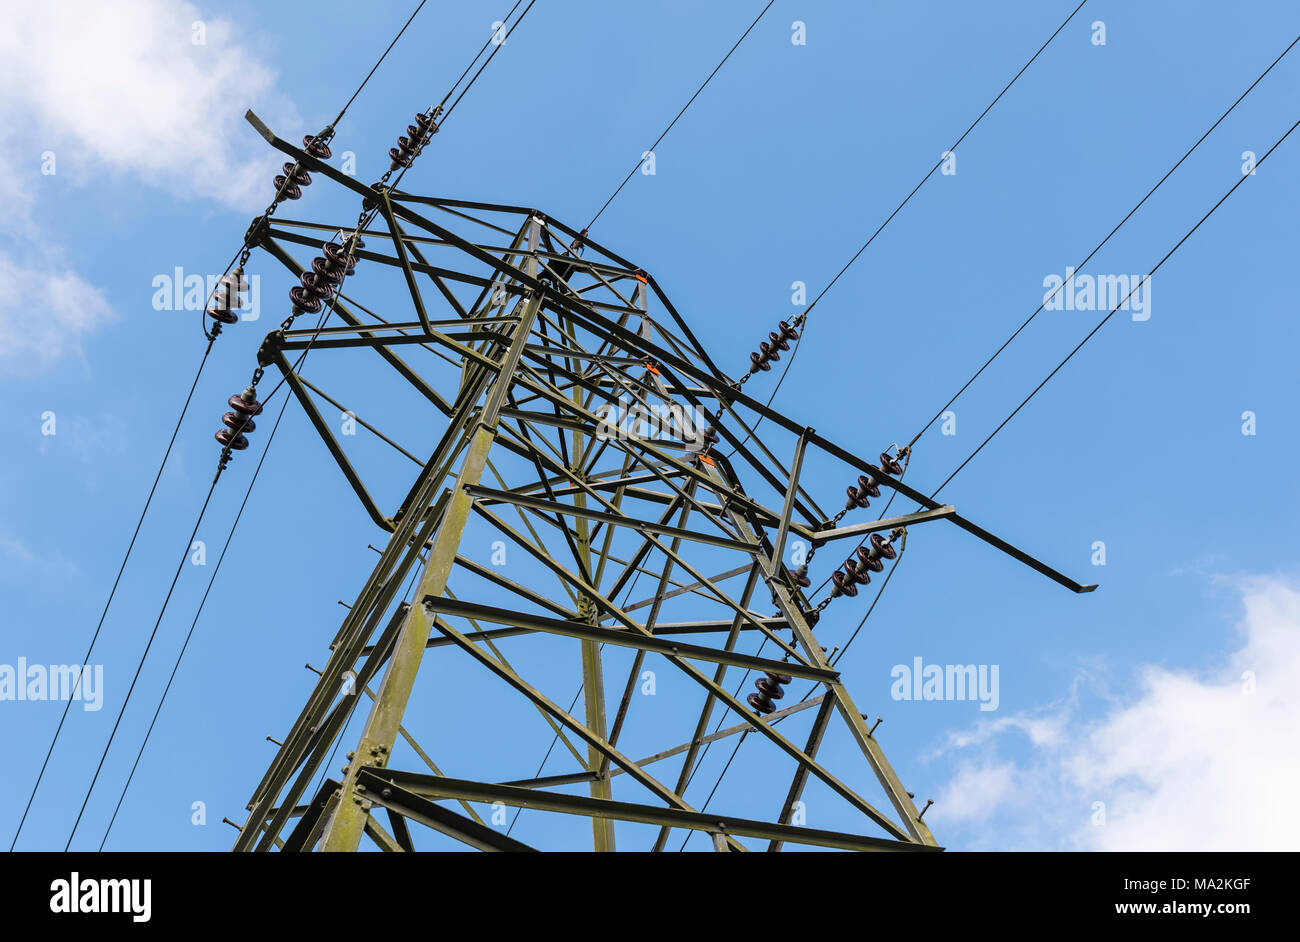 Electricity pylon and wires carrying electrical power on the National Grid in the UK. - Stock Image